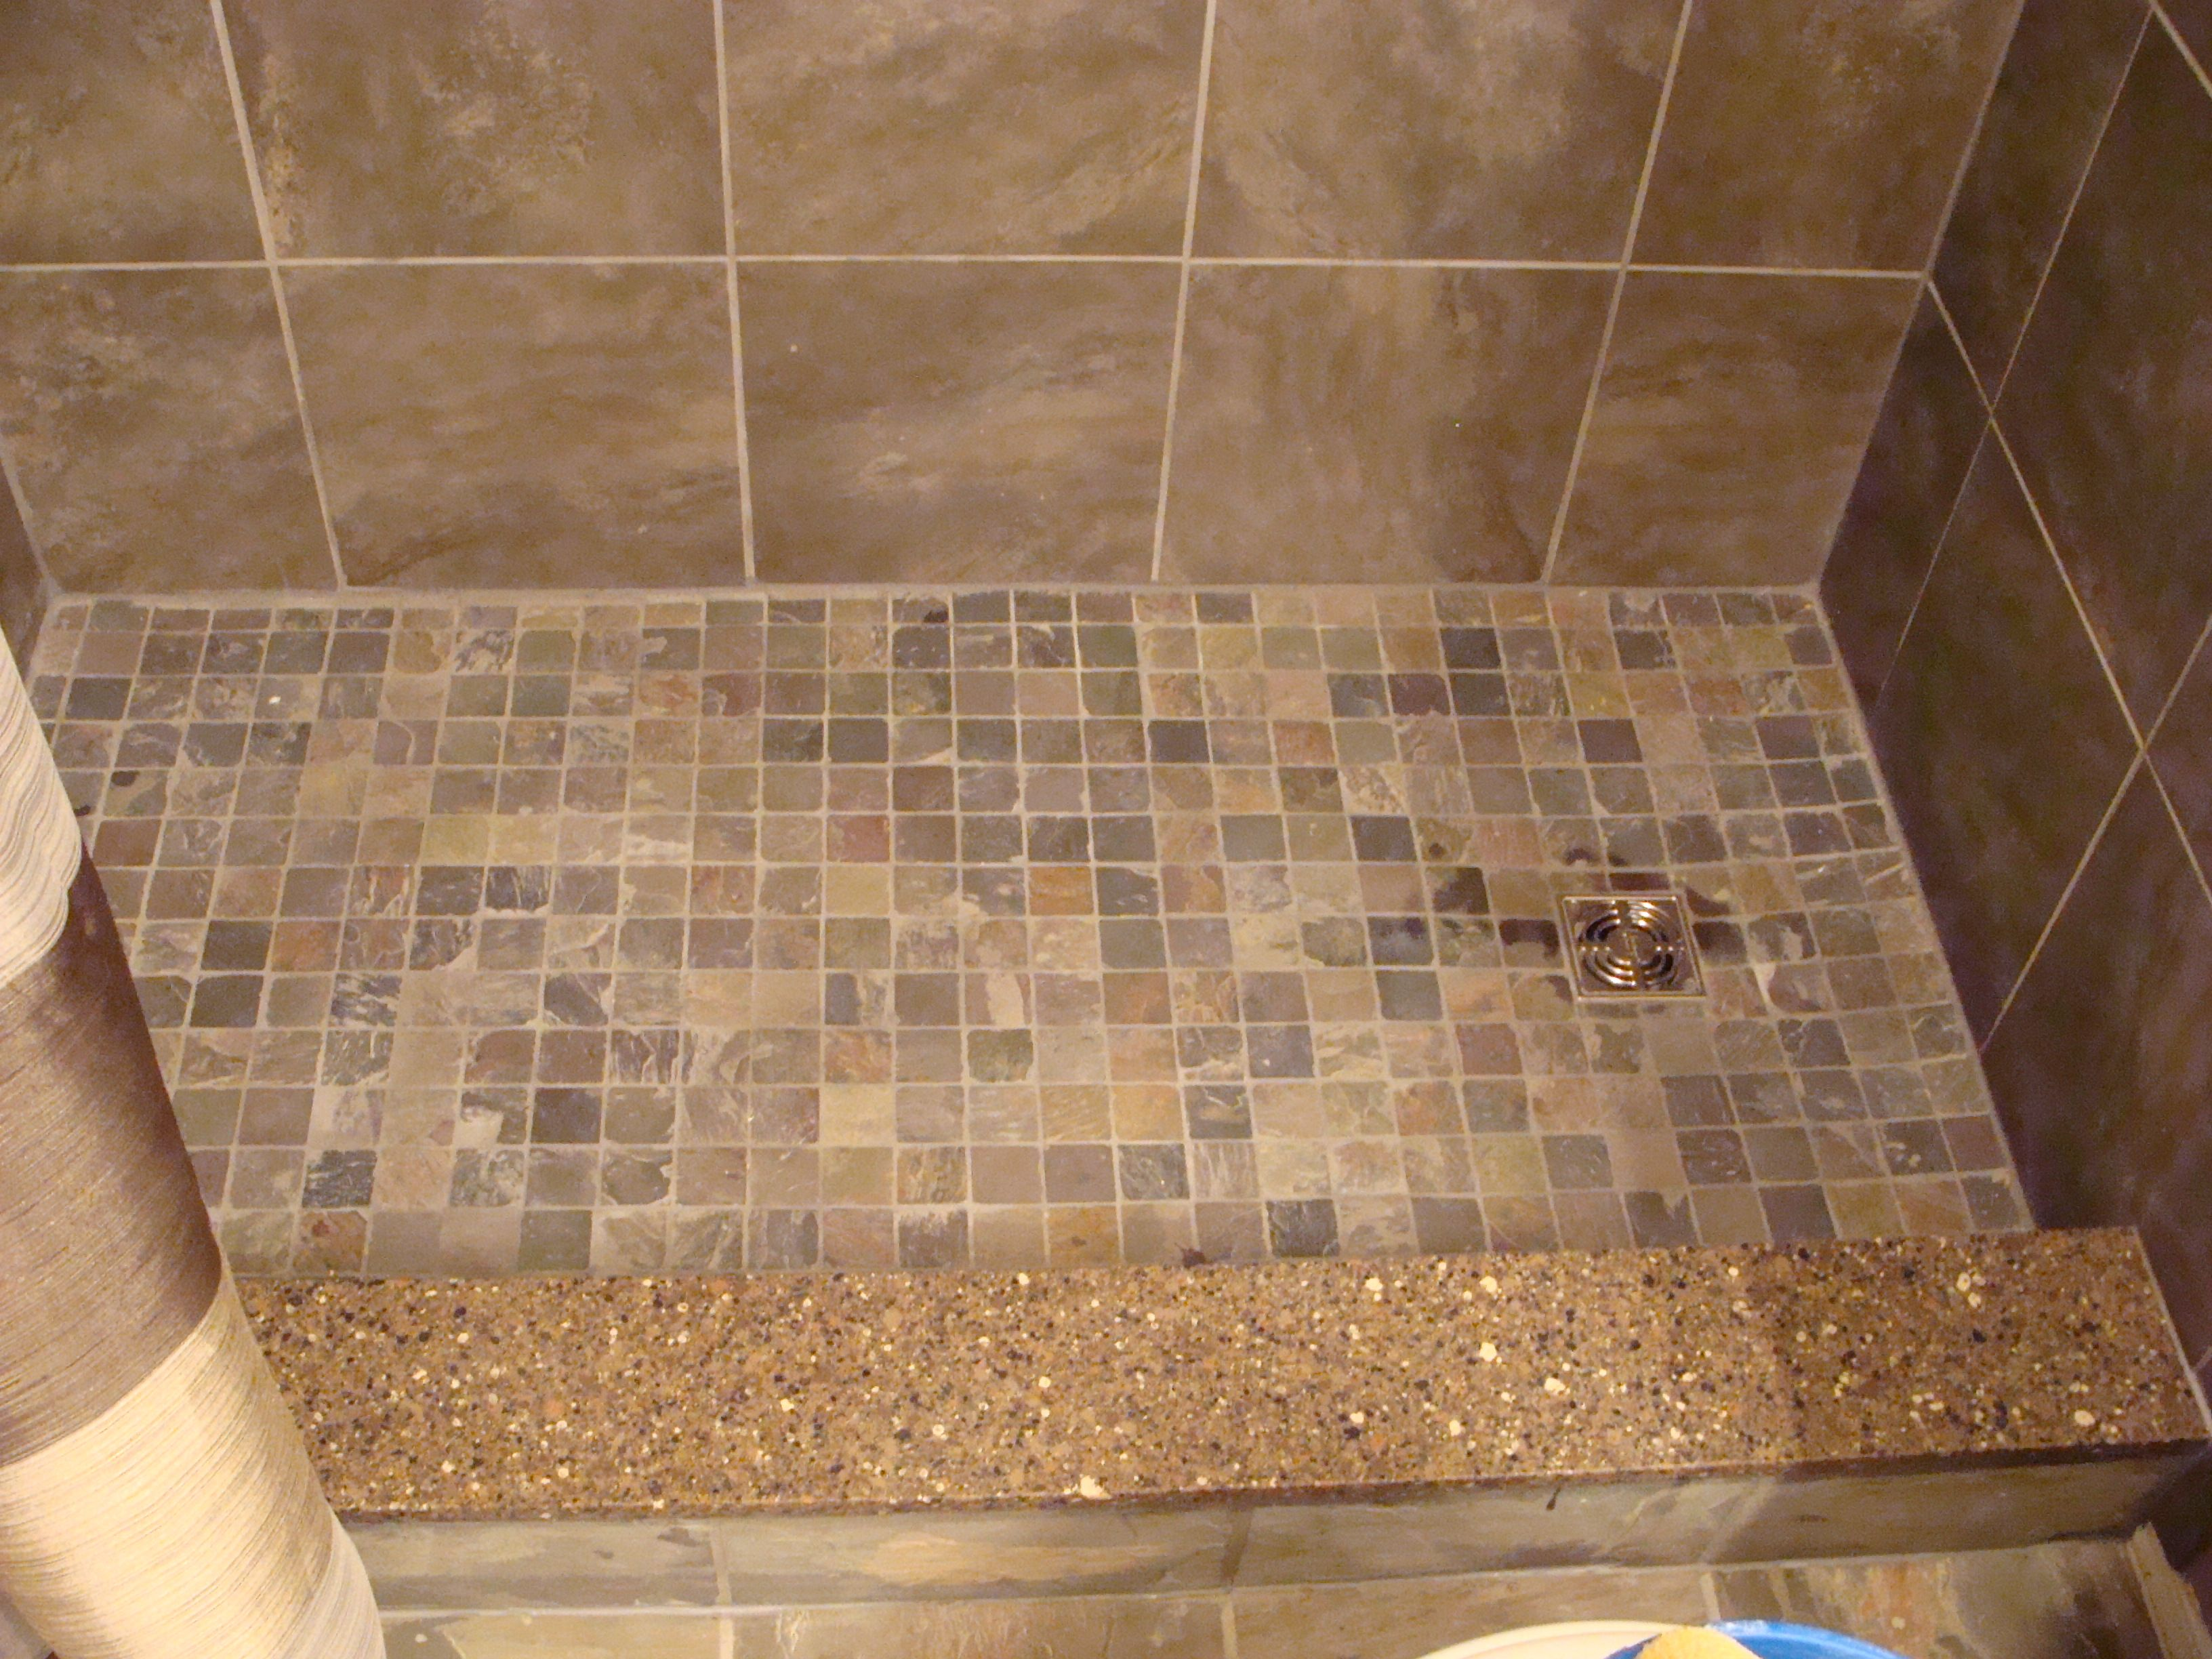 Slate mosaic tiles on shower floor quartz shower curb bathtub to slate mosaic tiles on shower floor quartz shower curb bathtub to shower conversion dailygadgetfo Images